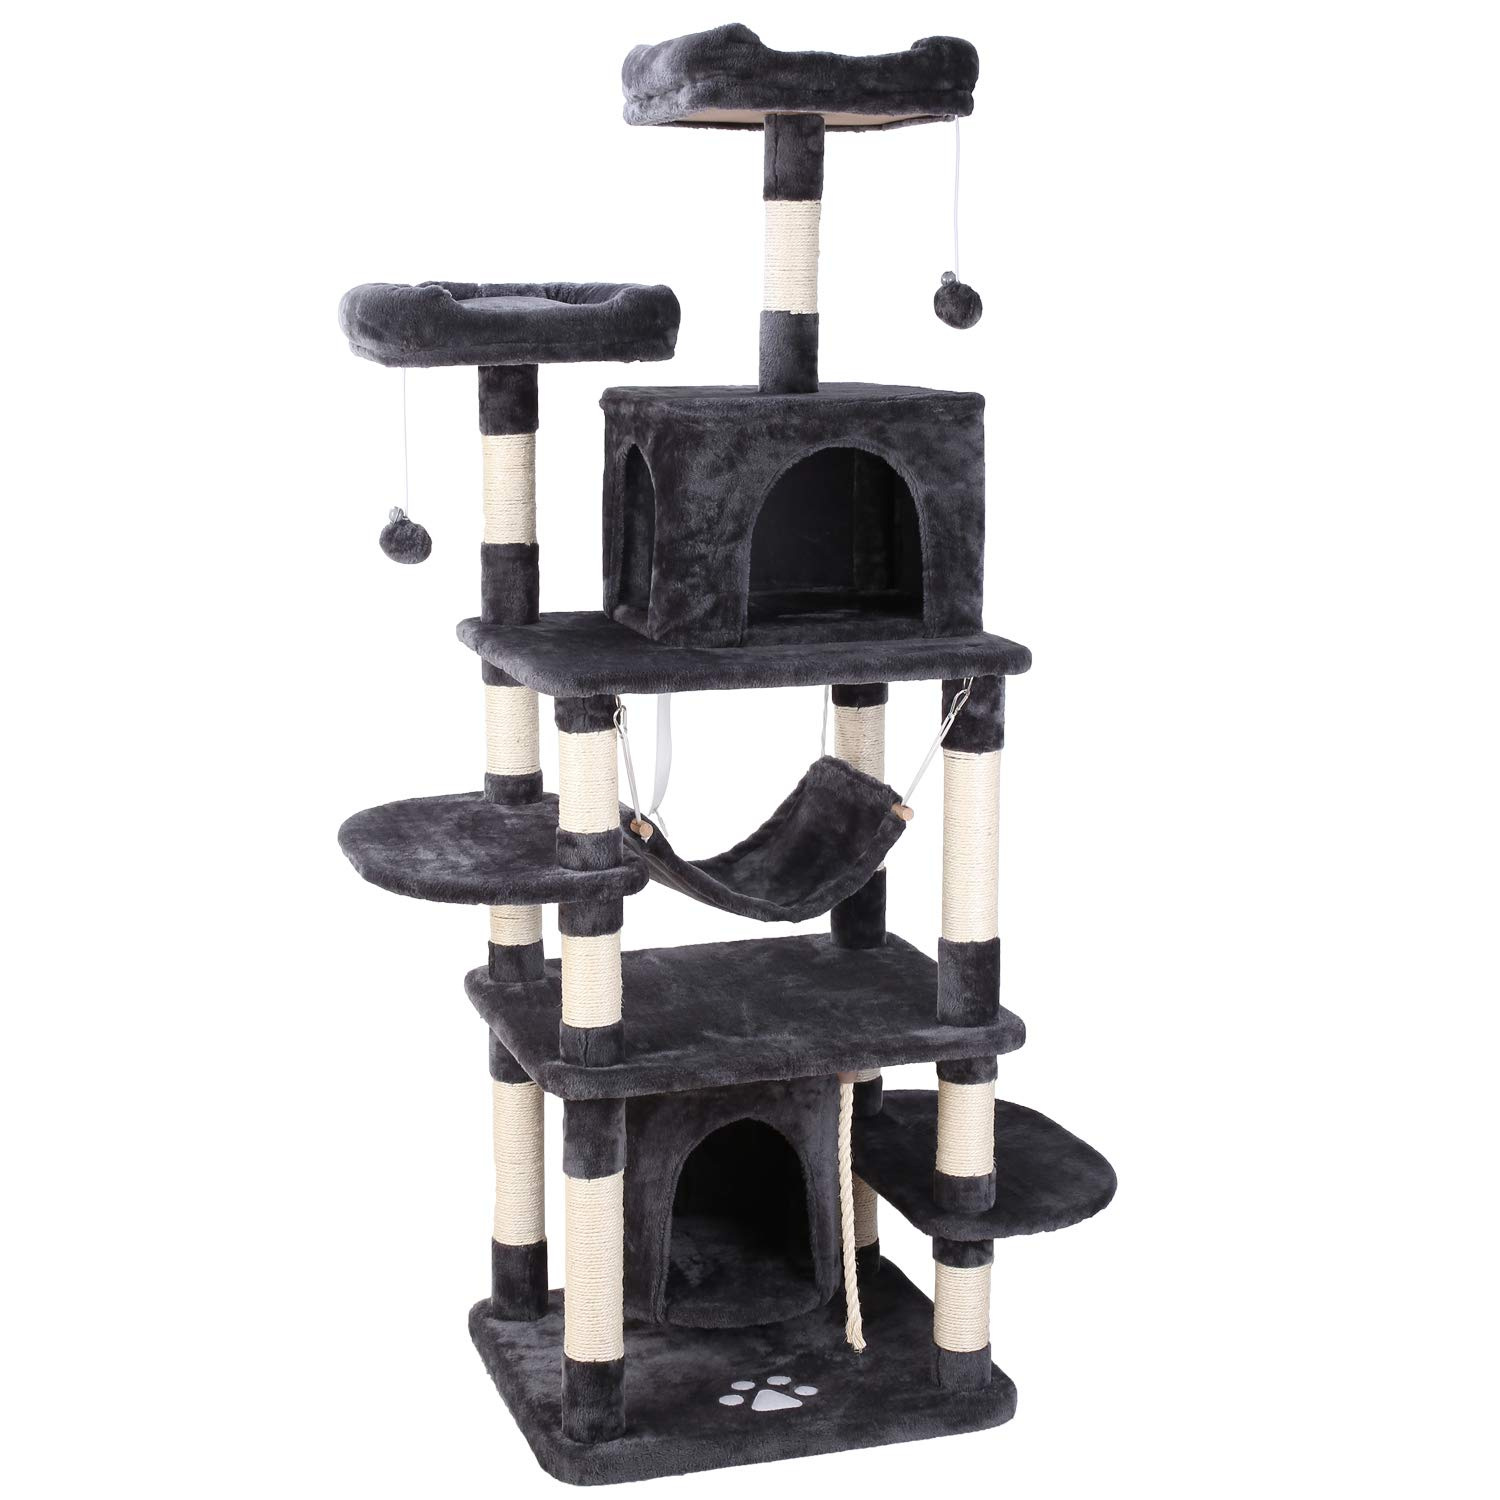 POTBY 67'' Multi-Level Cat Tree Play House Climber Activity Centre Tower Stand Furniture, with Scratching Posts, Hammock, Dangling Ball and Condo, Anti-toppling Devices, Suit for Kittens, Cats and Pet by POTBY